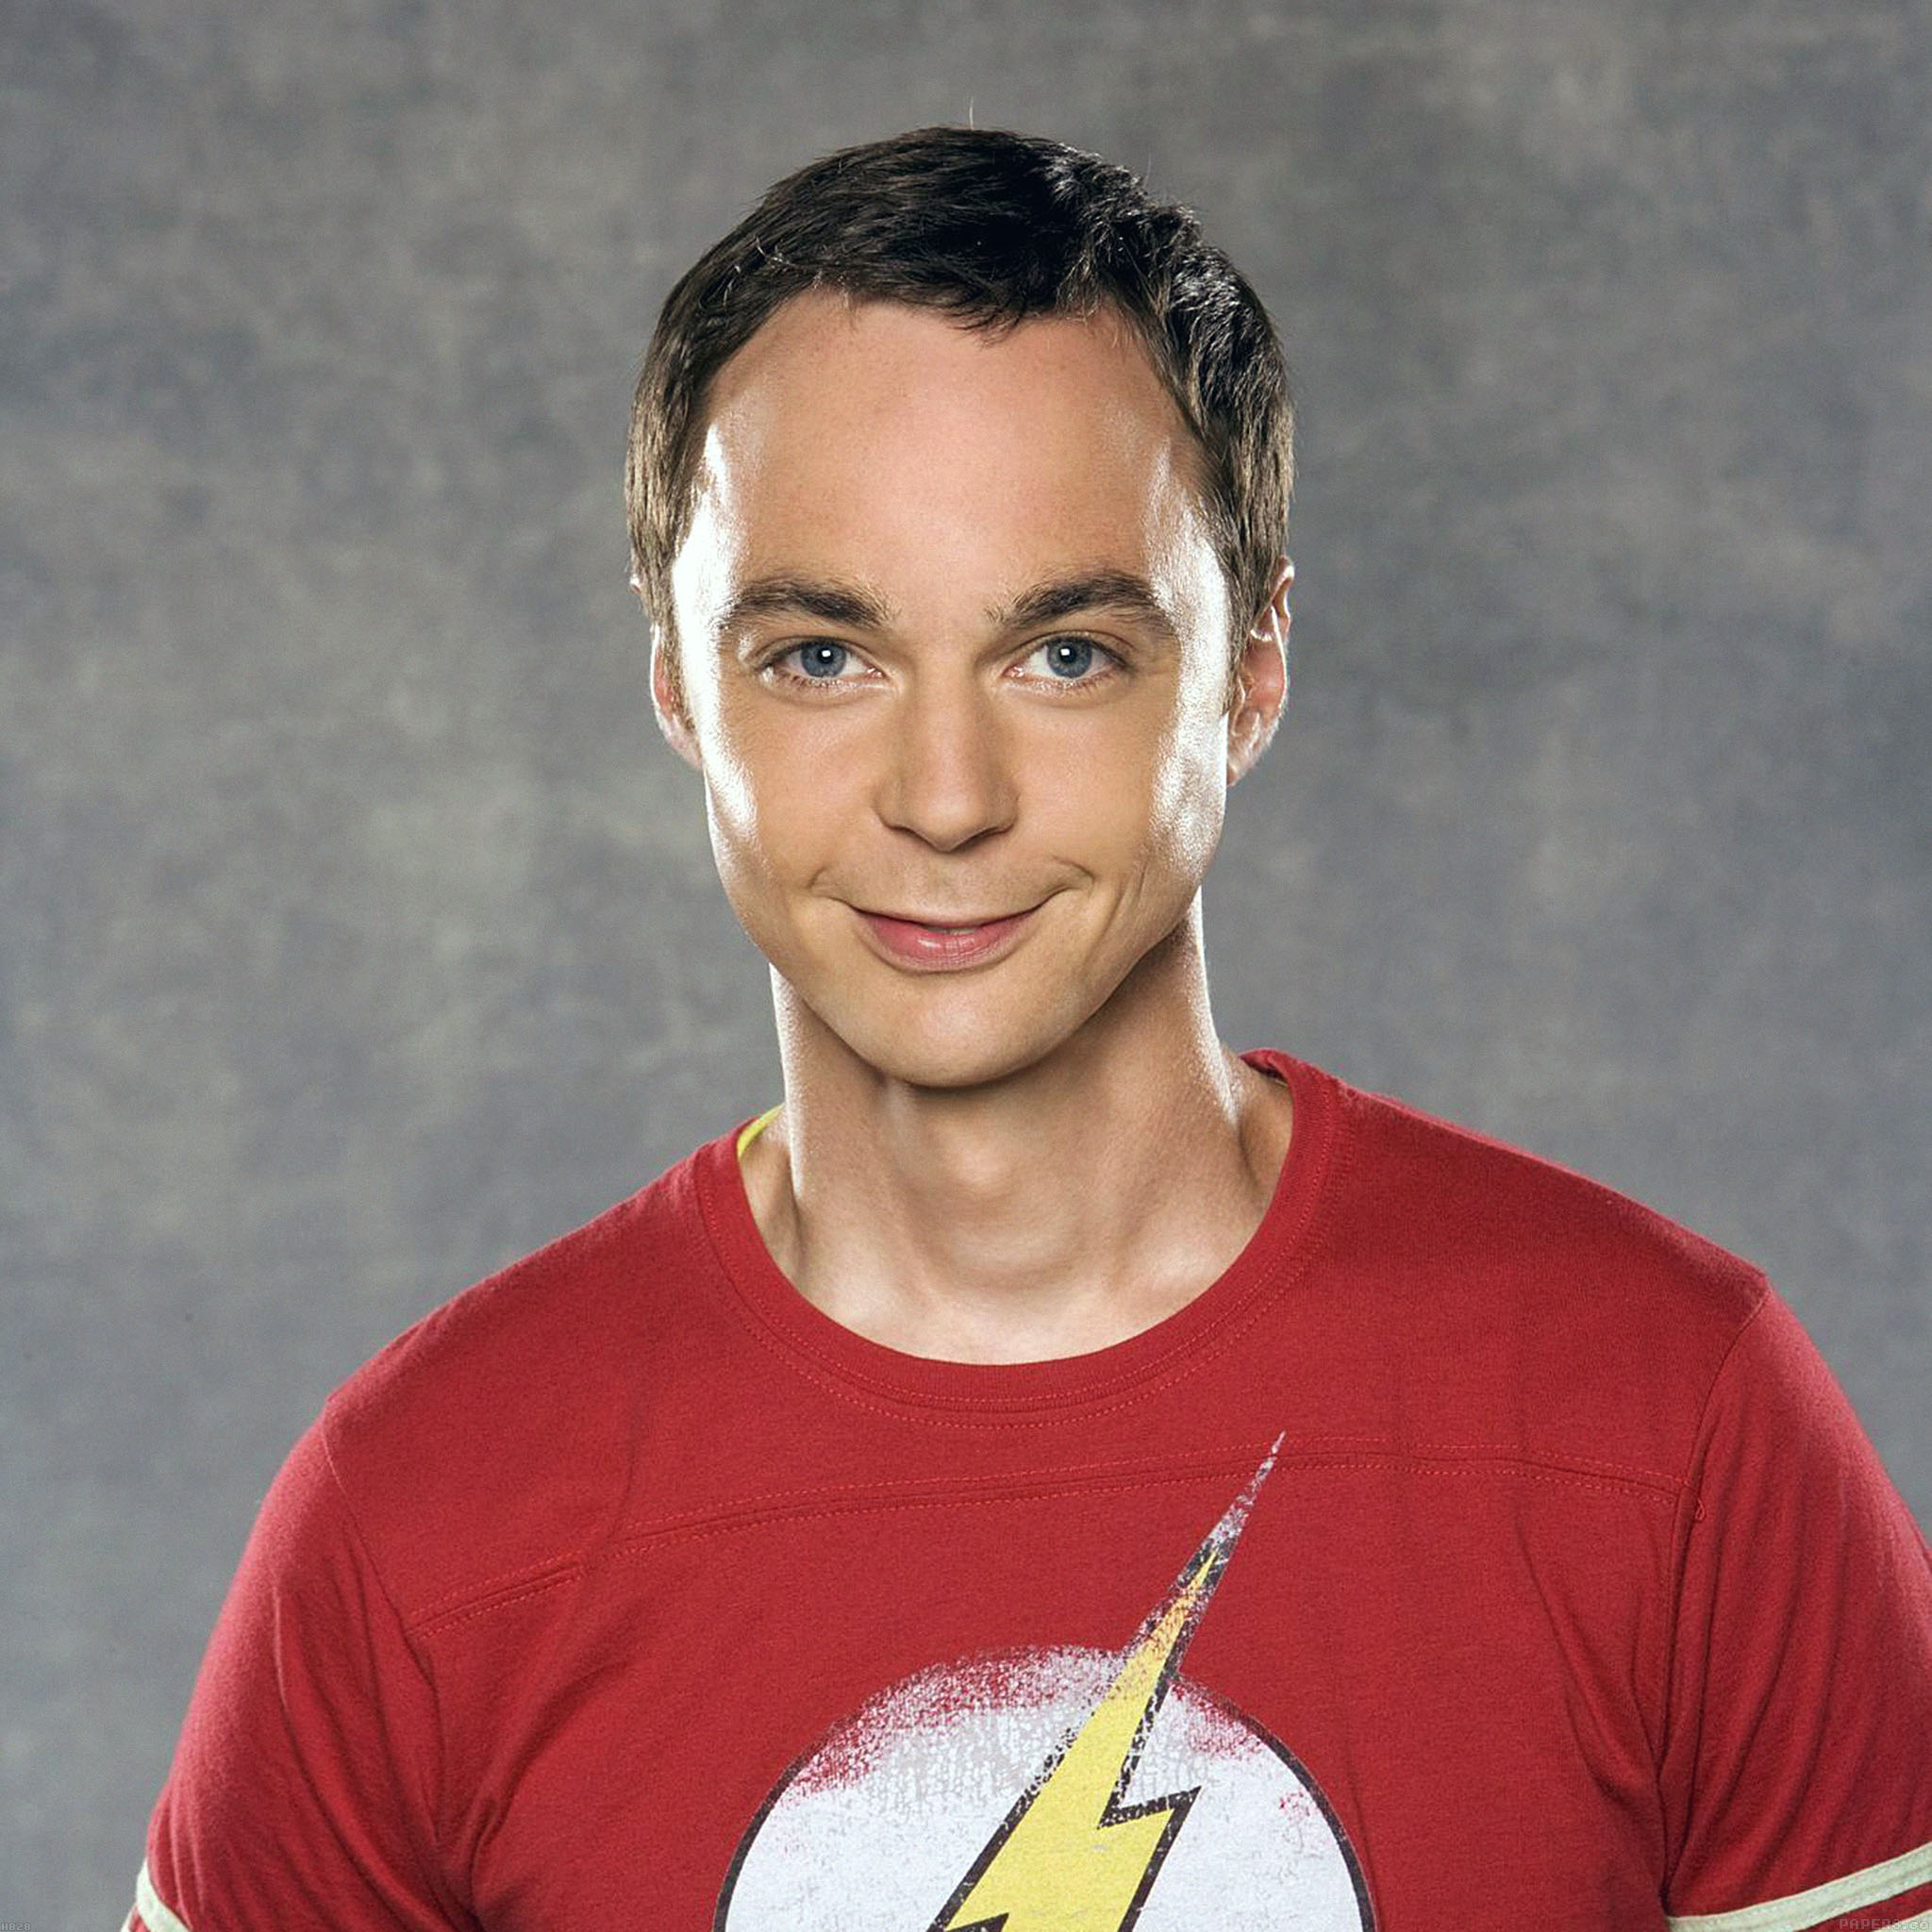 hb28 wallpaper sheldon cooper big bang theory bazinga 8 wallpaper.jpg